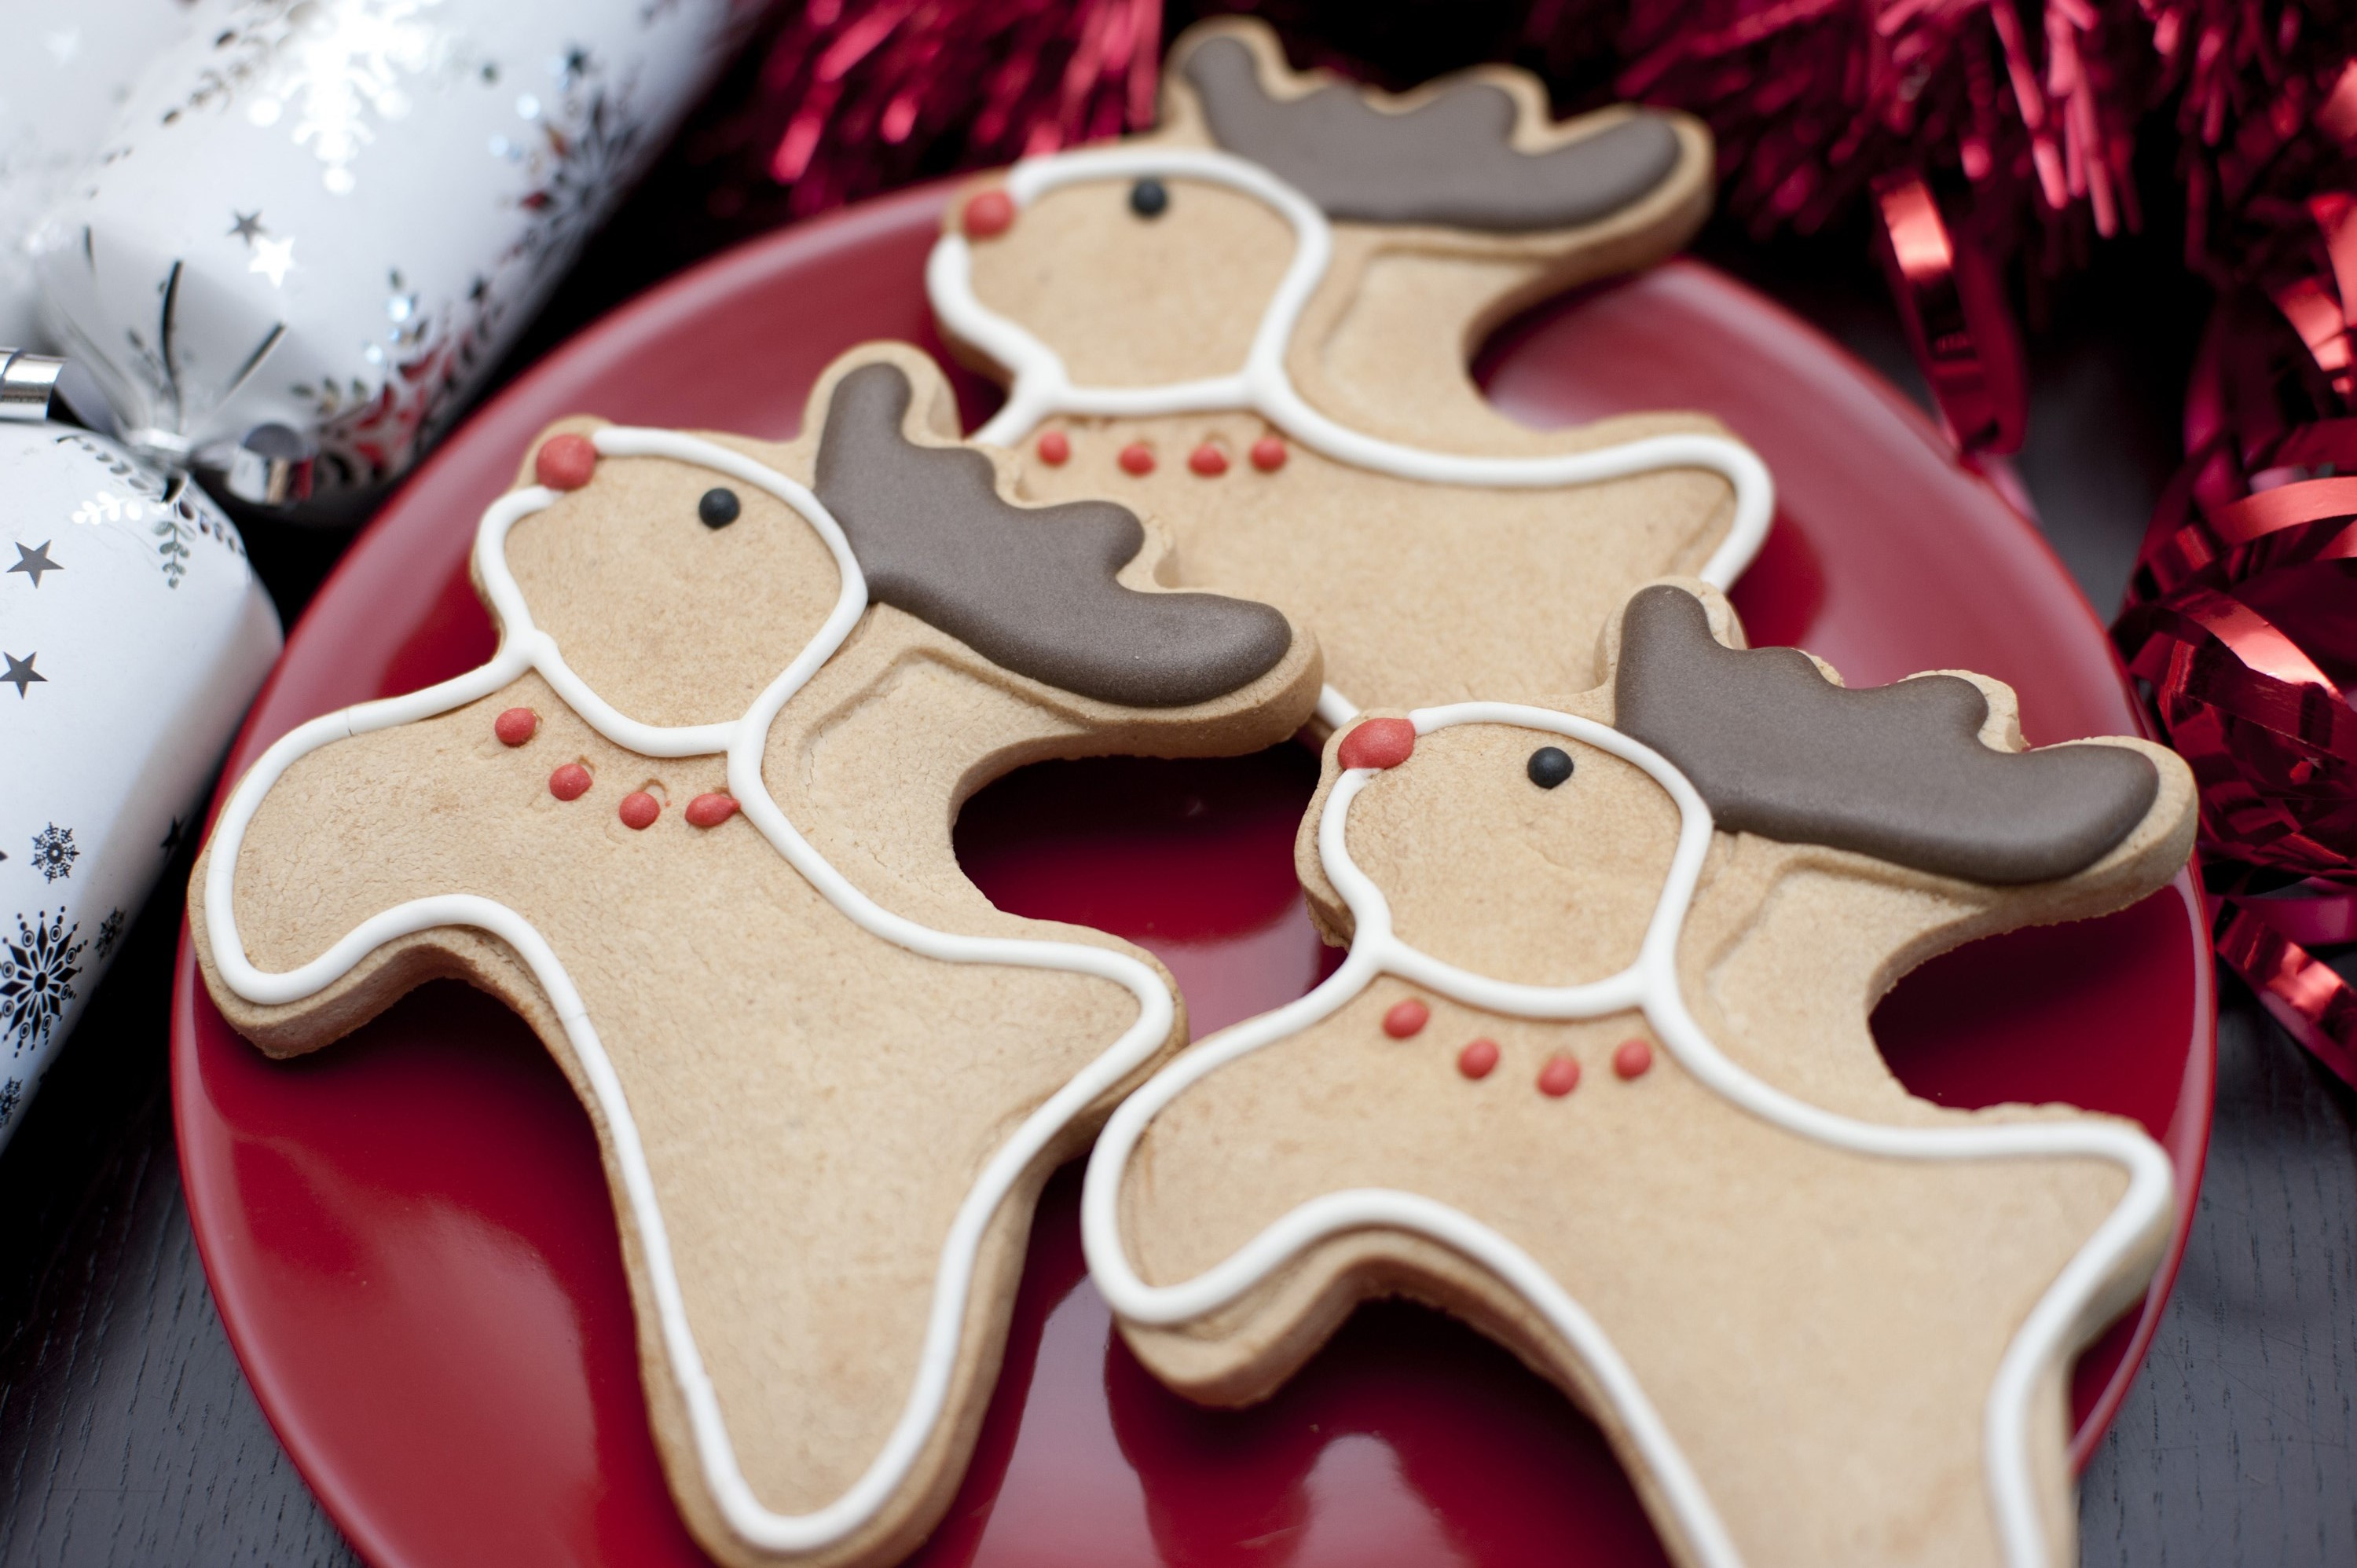 christmas reindeer gingerbread cookies decorated with red collars and noses and chocolate antlers for a fun